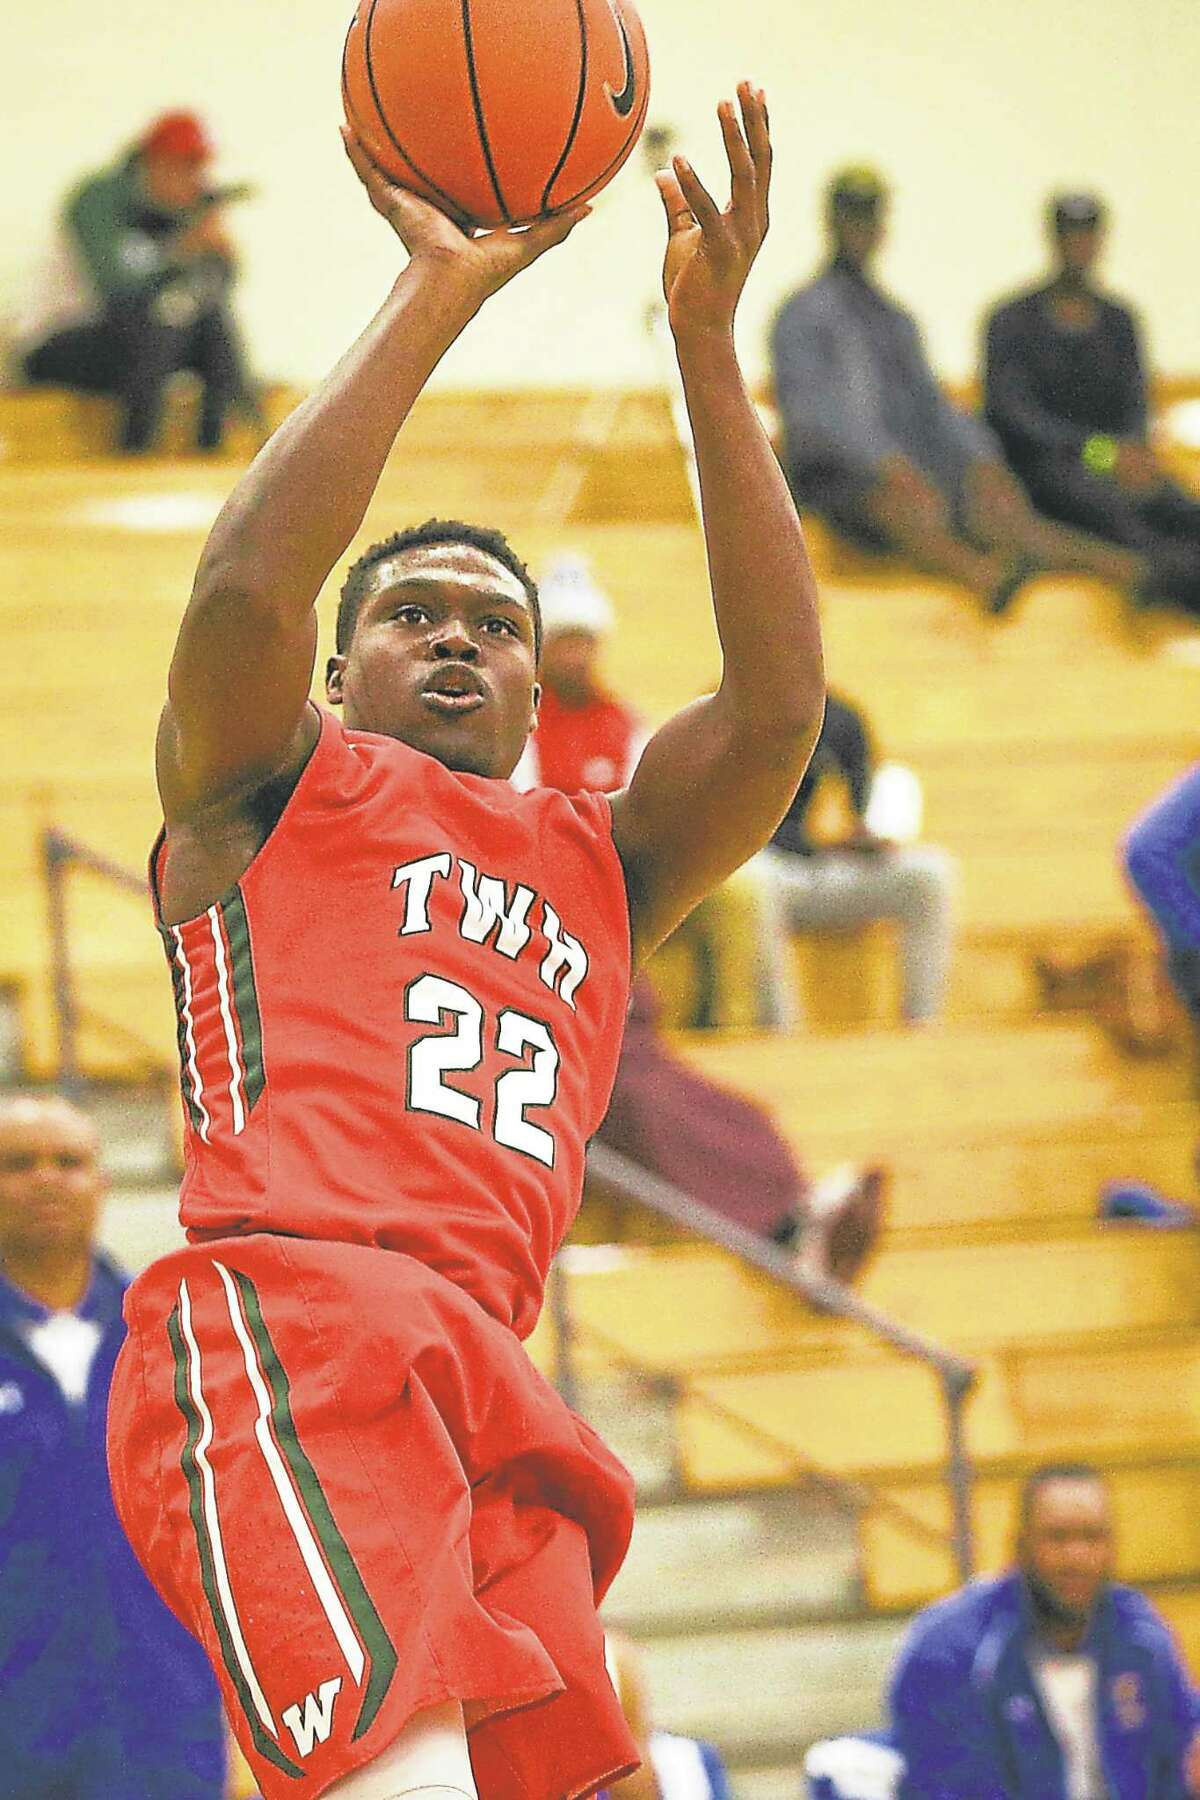 The Woodlands' Romello Wilbert (22) shoots the ball during the high school boys basketball game against Fort Bend Elkins on Saturday, Nov. 28, 2015, at The Woodlands High School. To view more photos from the game, go to HCNPics.com.